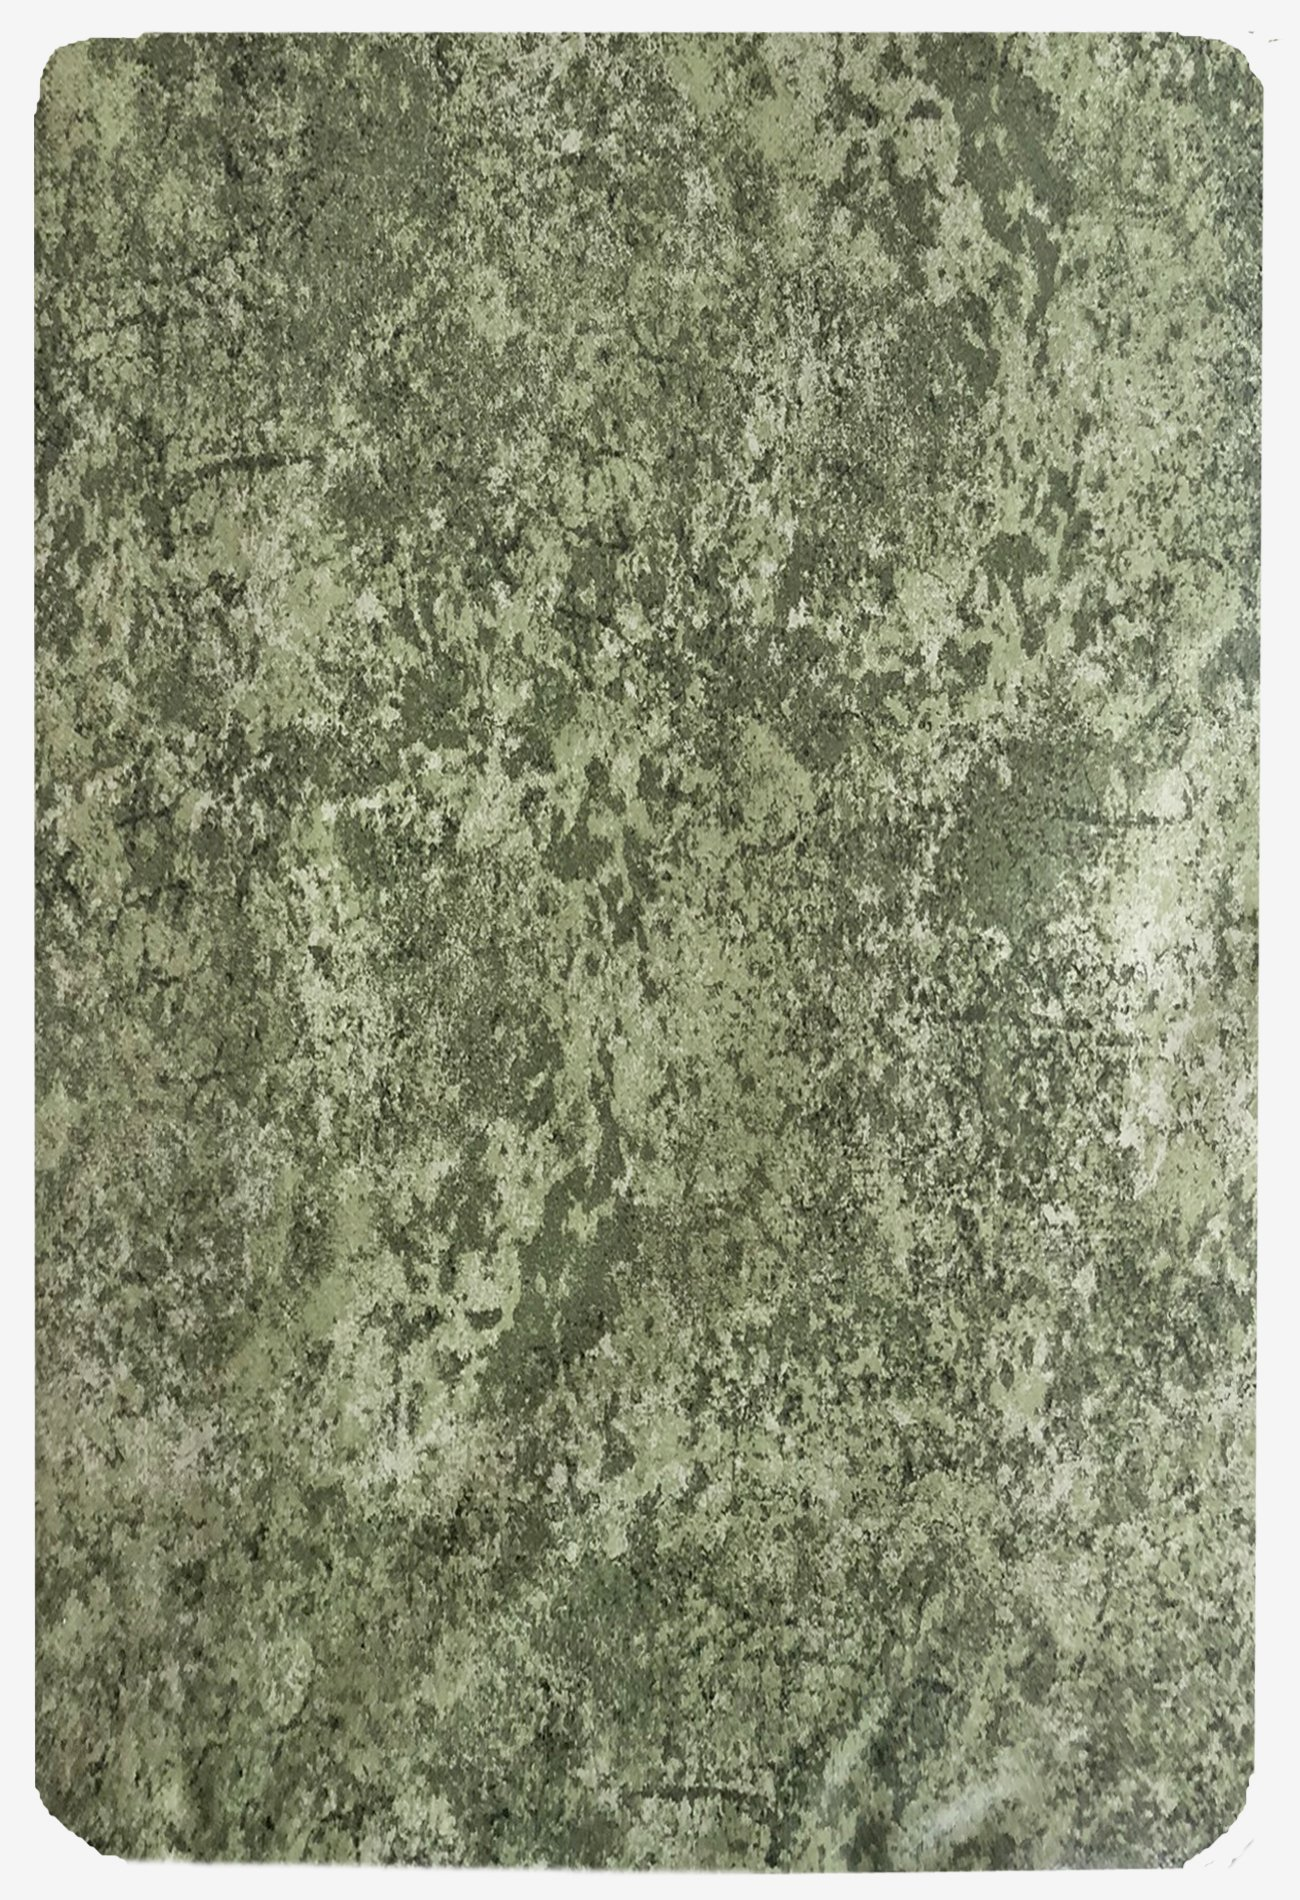 Sage Milano Marble Solid Color Print Heavy Gauge Vinyl Flannel Backed Tablecloth, Indoor/Outdoor Tablecloth for Picnic, Barbeque, Patio and Kitchen Dining, (60 Inch x 84 Inch Oblong/Rectangle) by Newbridge (Image #2)